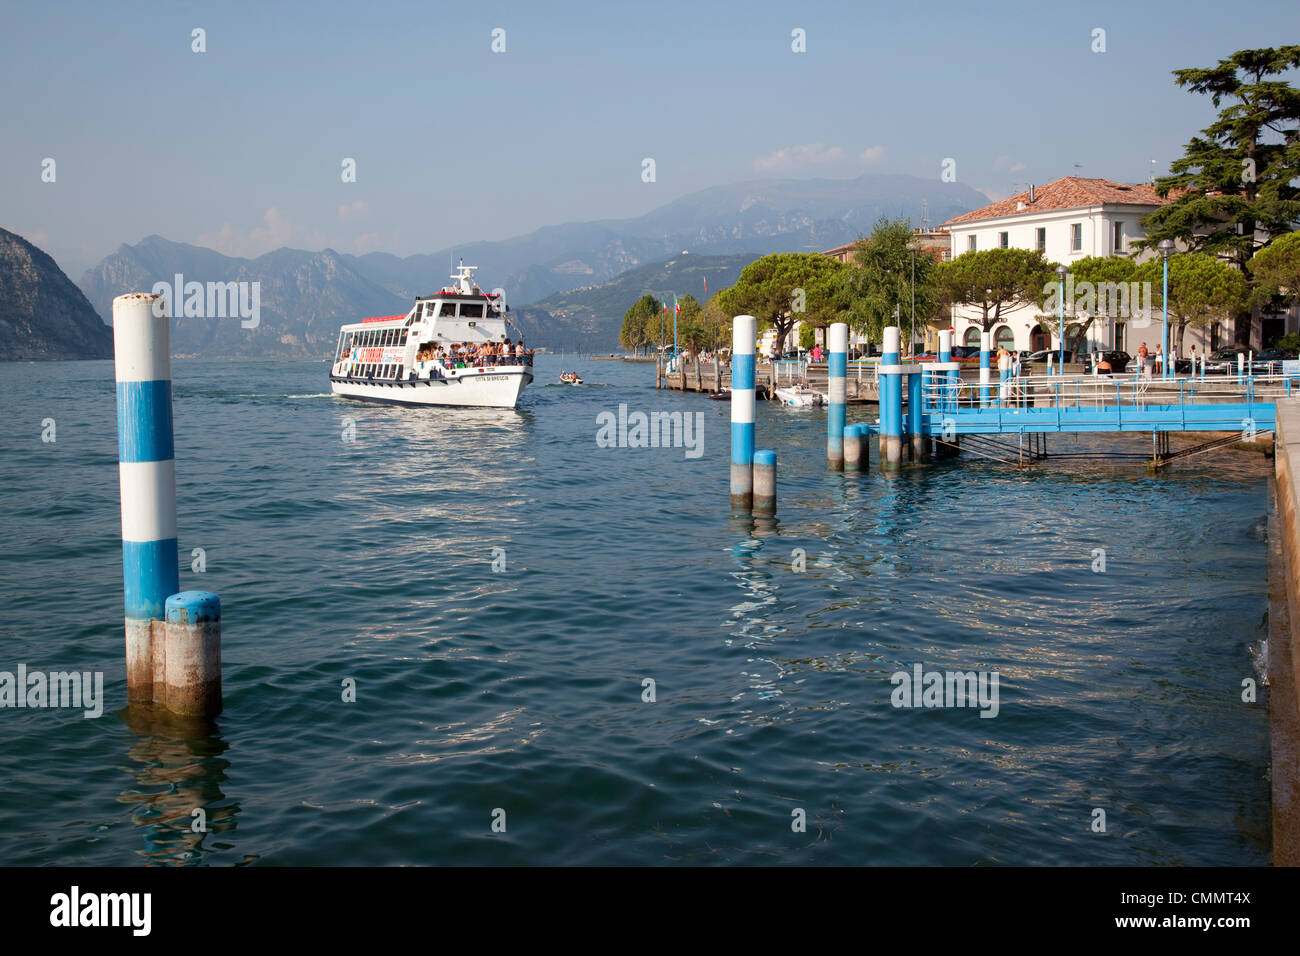 Harbour and sightseeing boat, Iseo, Lake Iseo, Lombardy, Italian Lakes, Italy, Europe - Stock Image